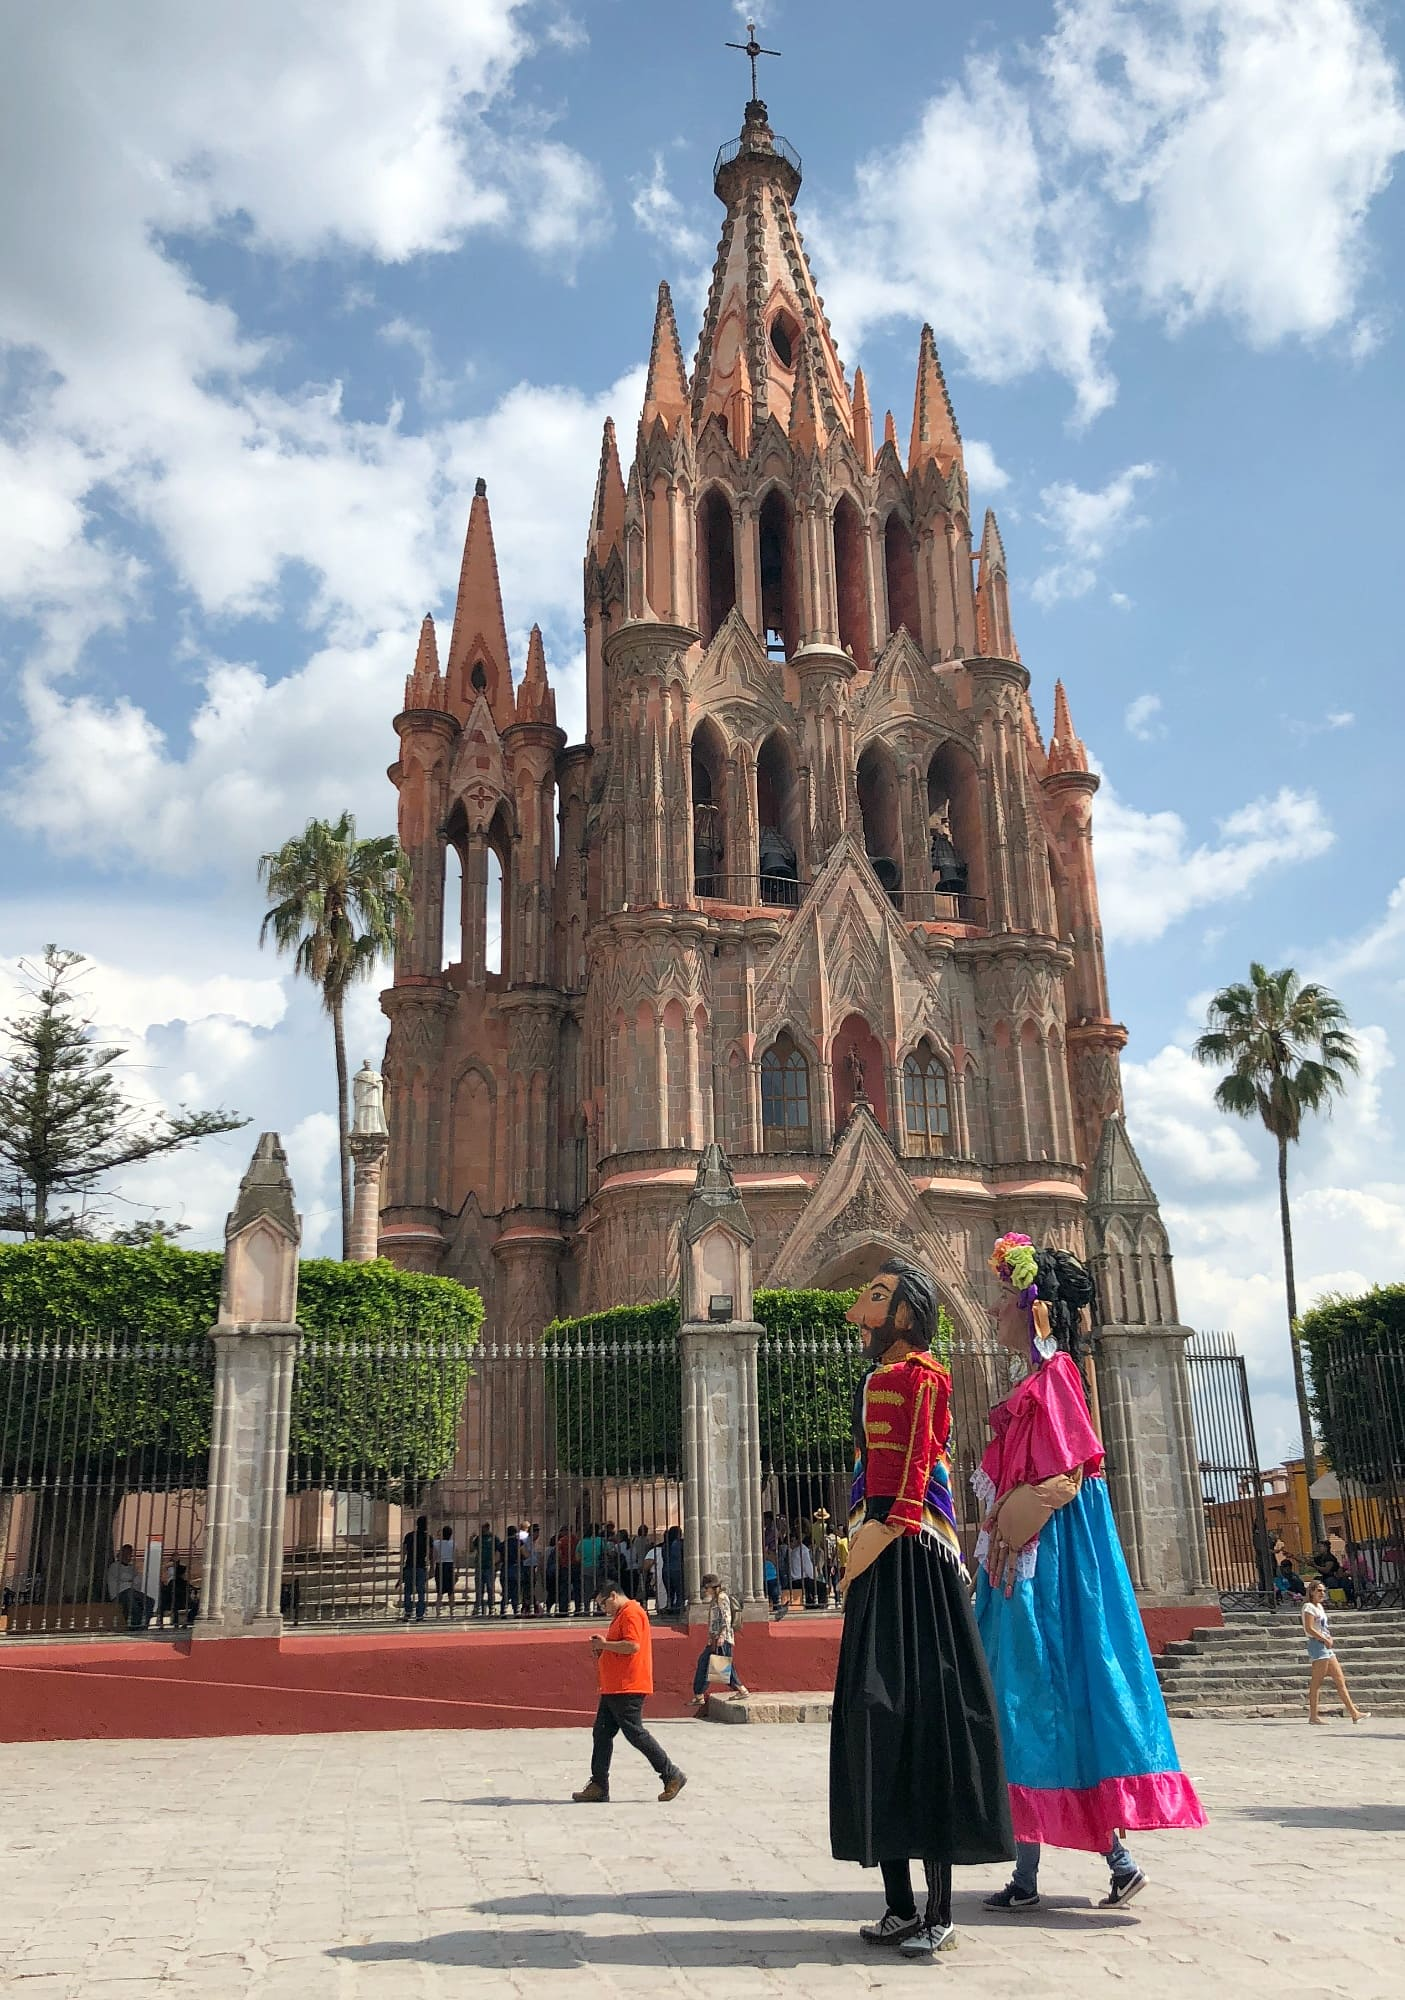 You may spy mojigangas, giant masked celebratory characters, marching near the Parroquia in San Miguel de Allende with kids